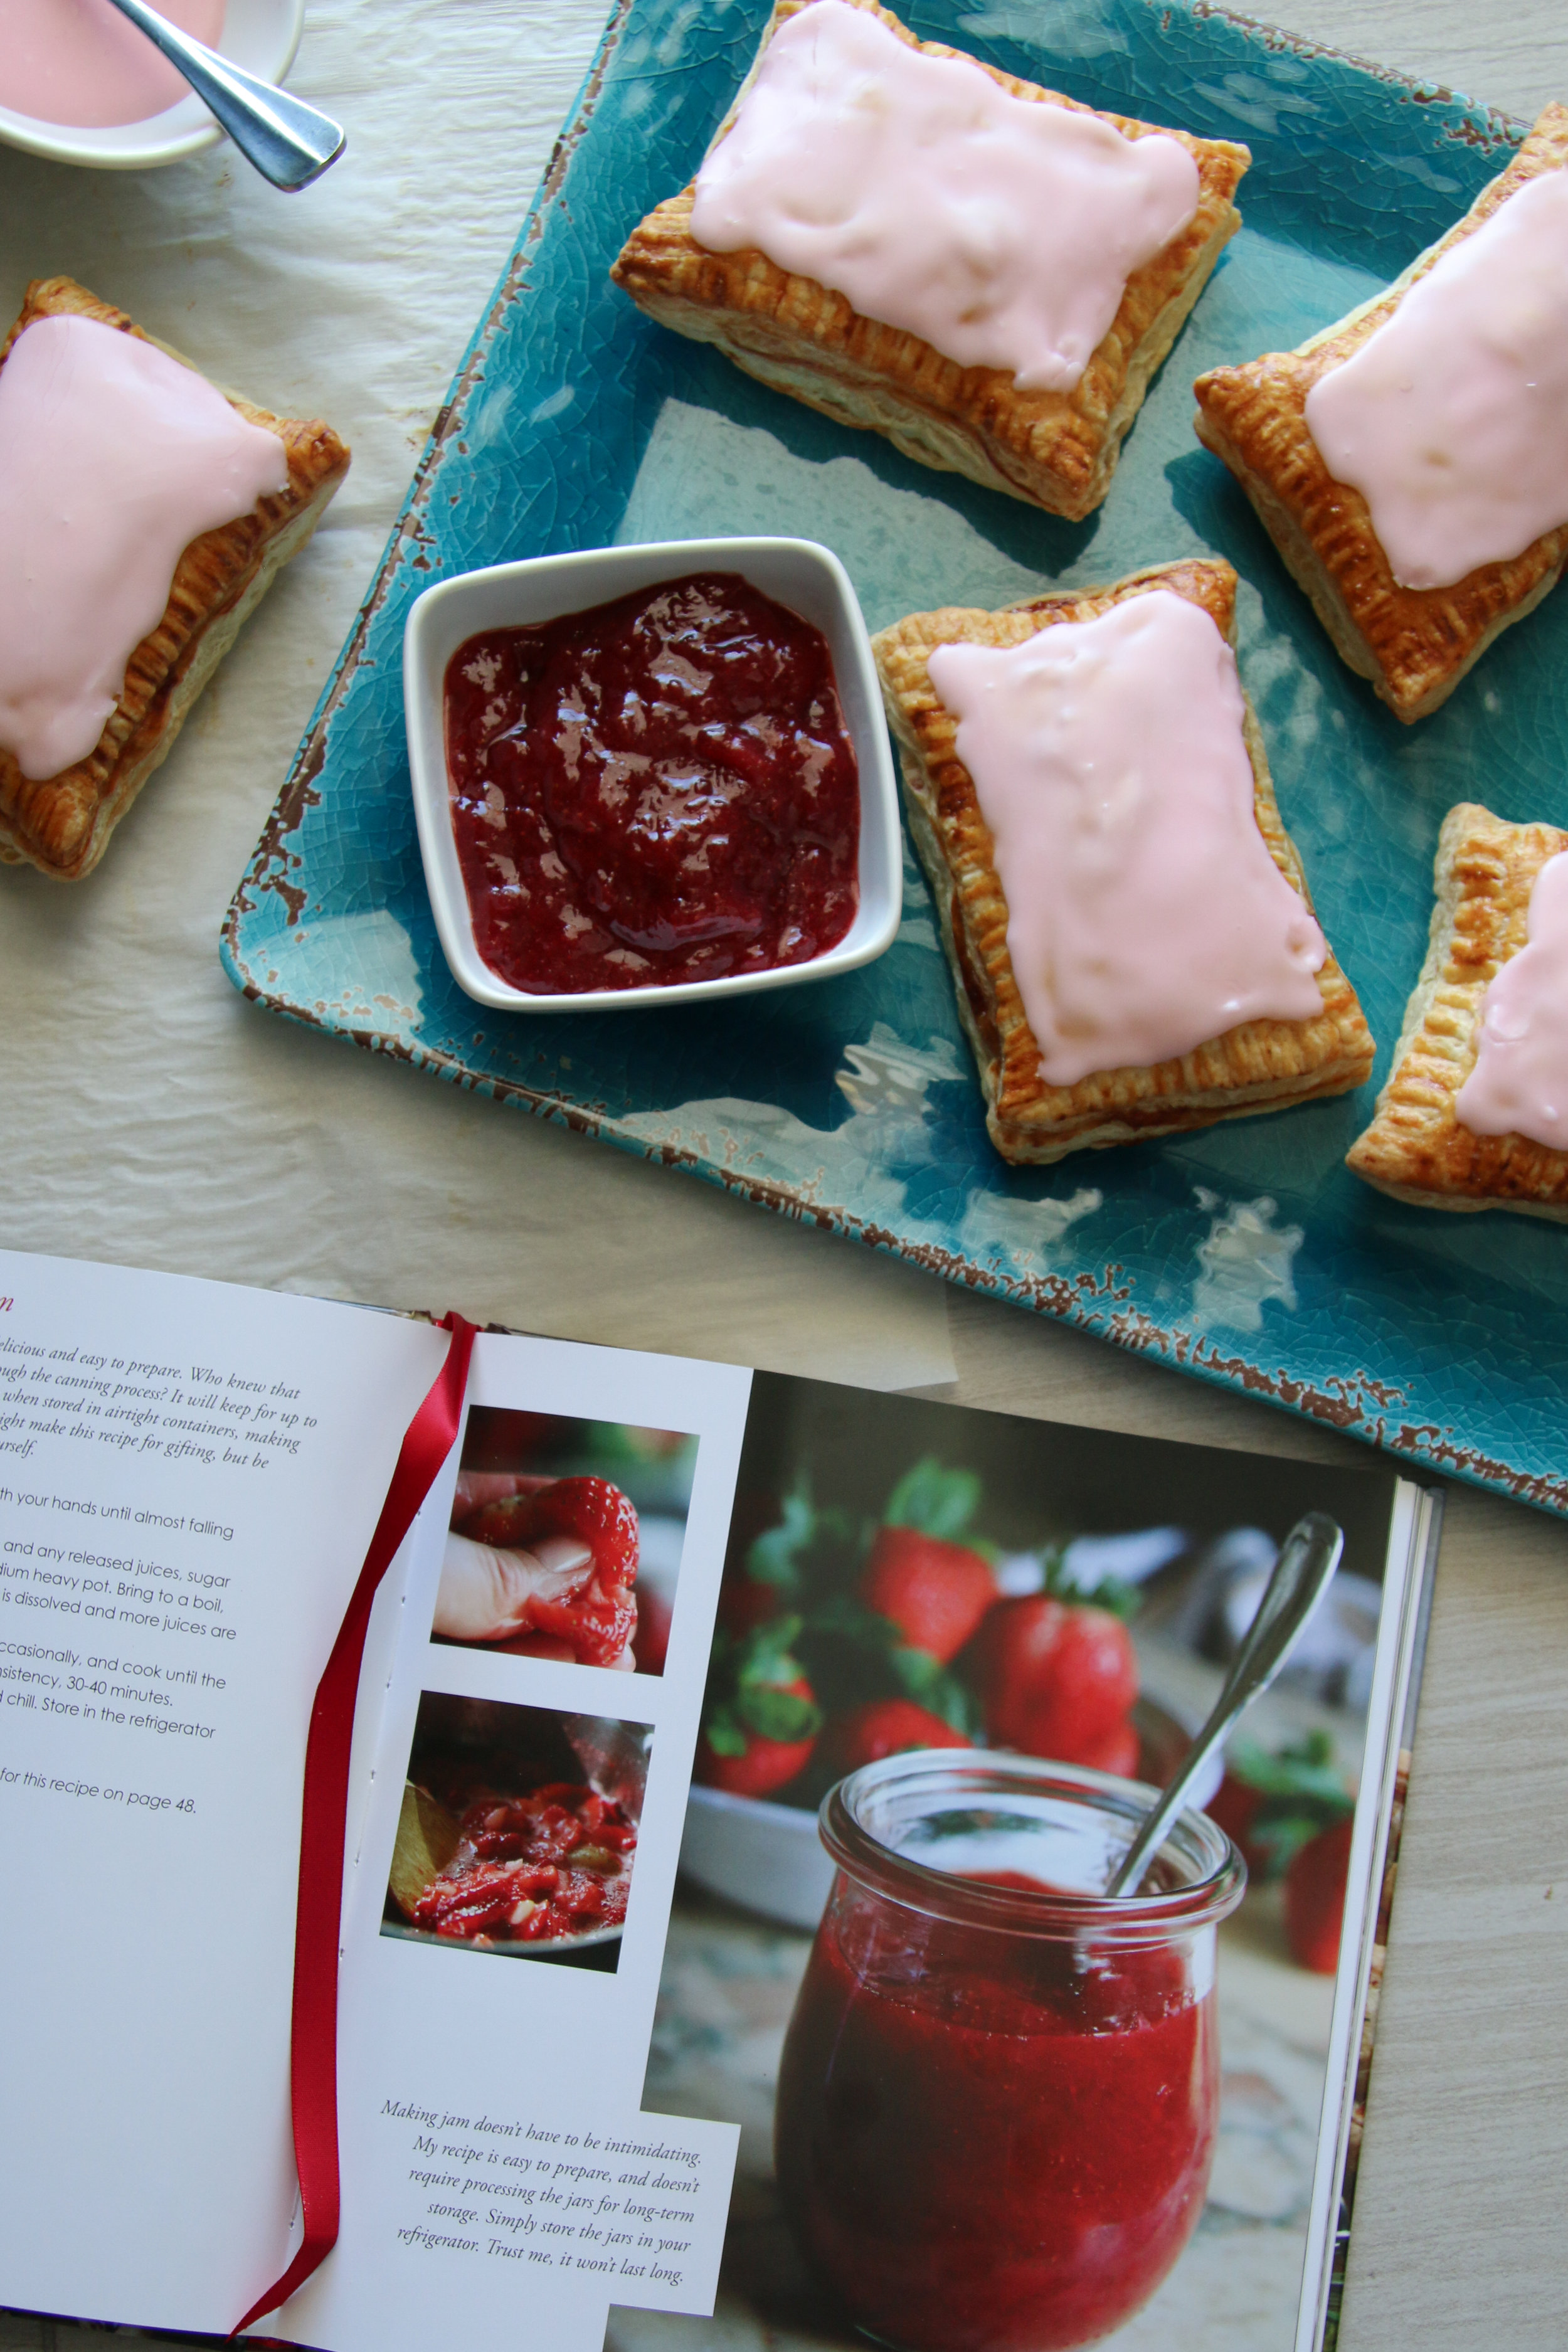 Strawberry Jam Hand Tarts.jpg